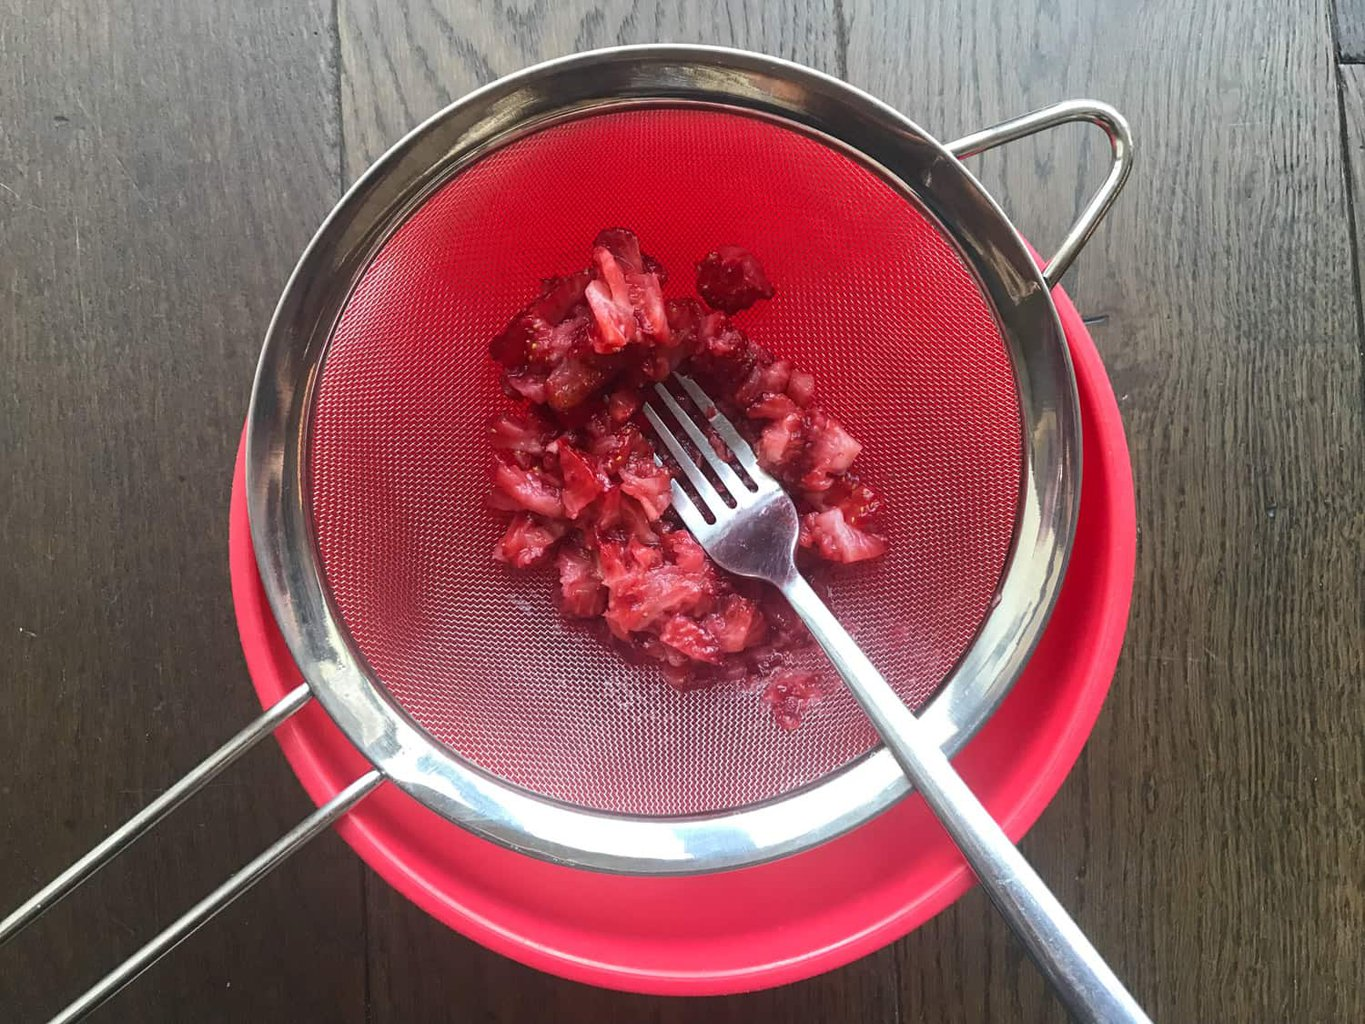 Passing strawberries through a sieve into a bowl